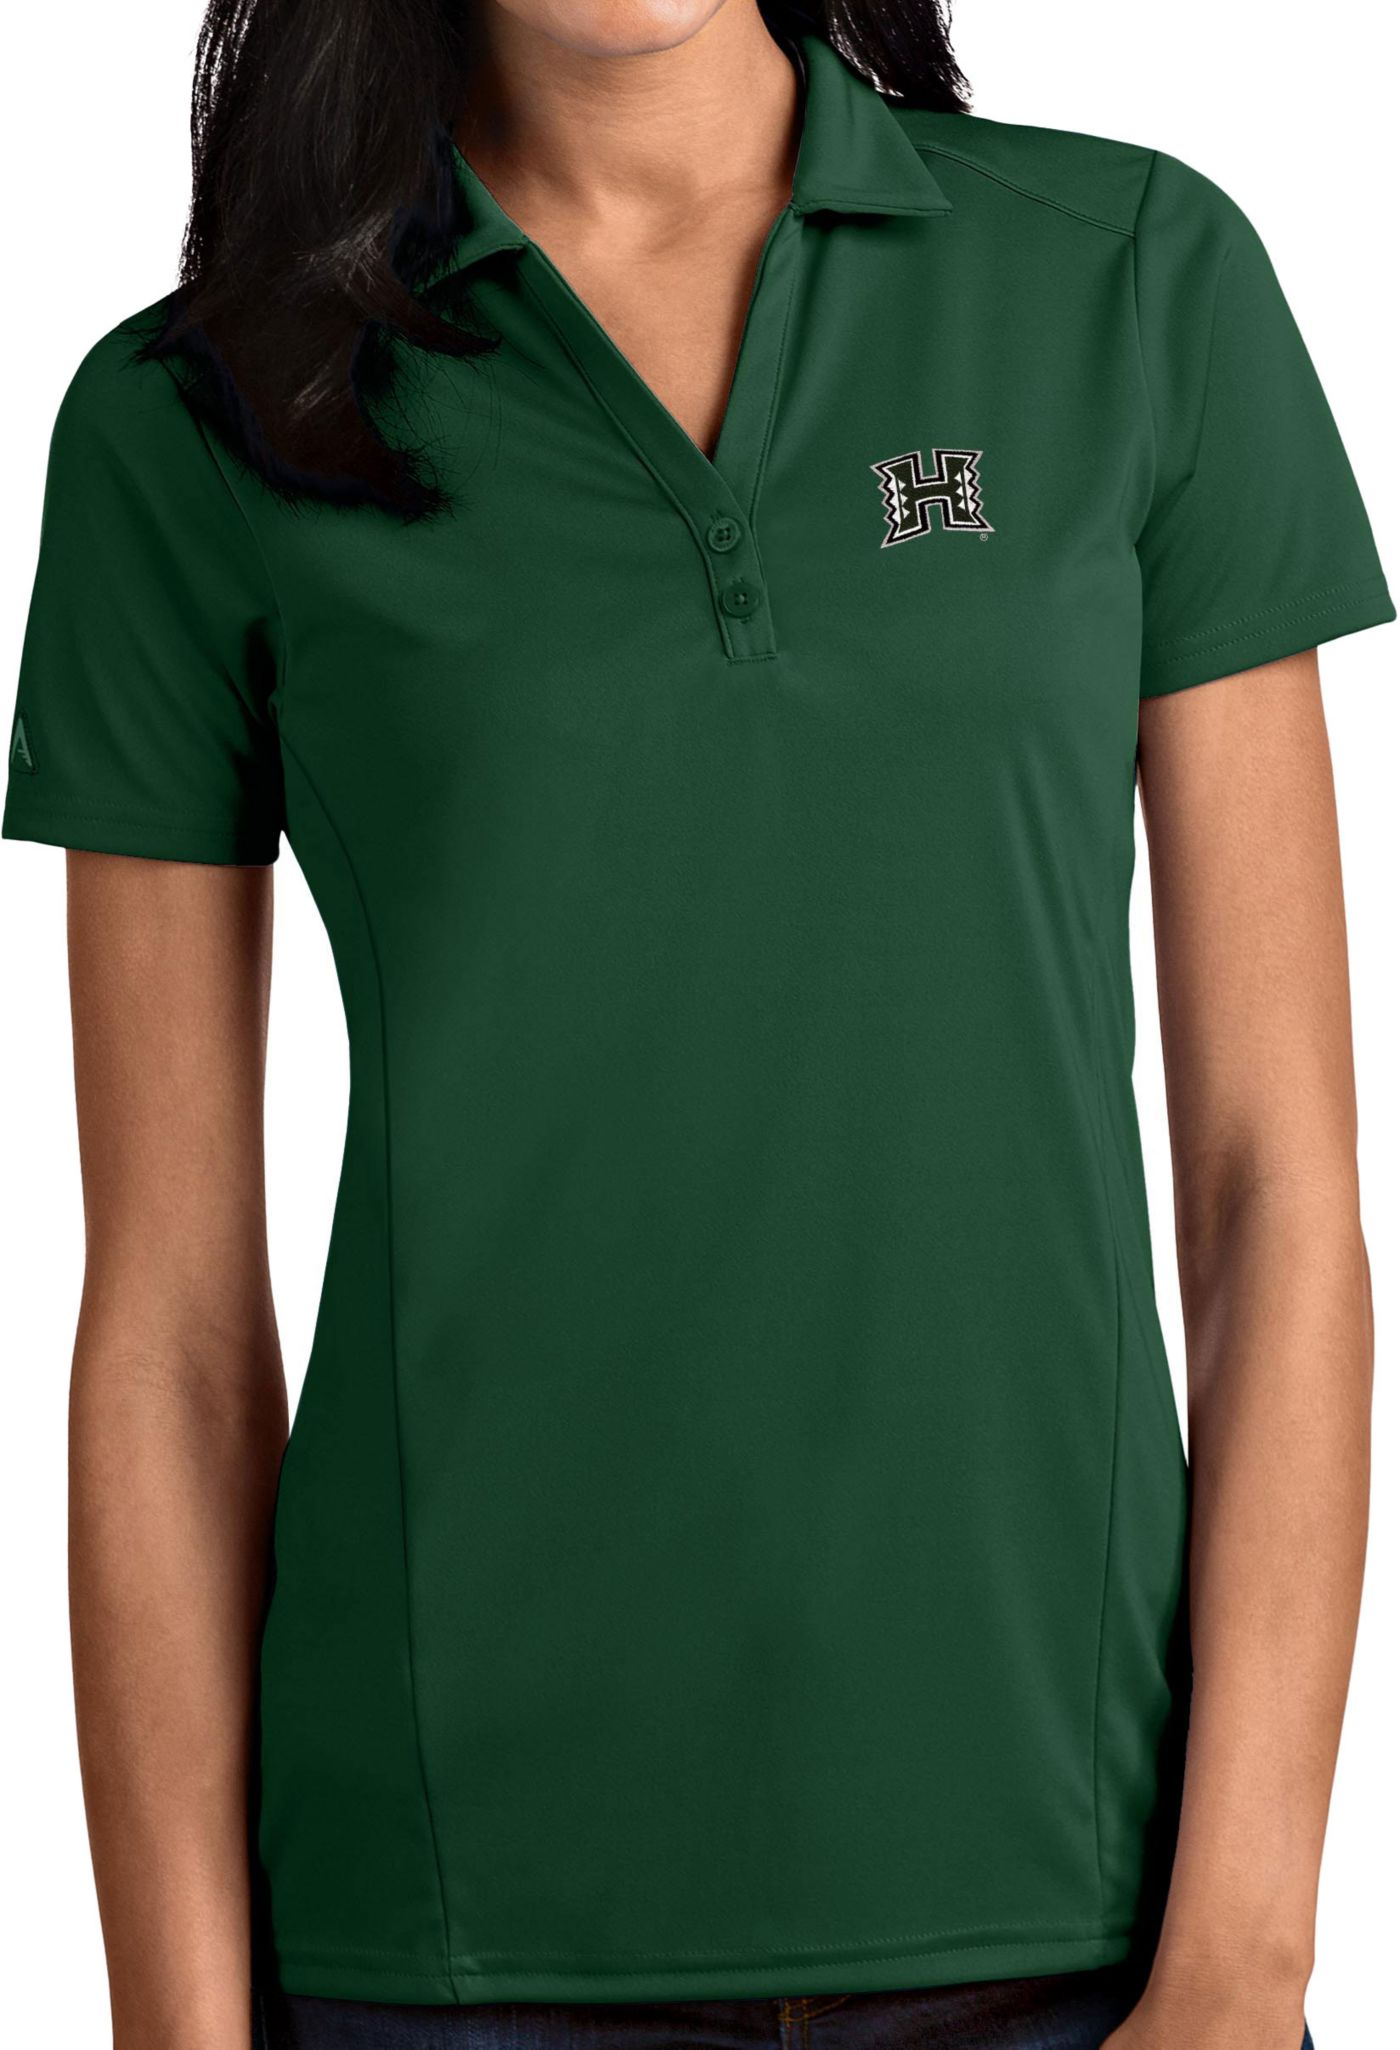 Antigua Women's Hawai'i Warriors Green Tribute Performance Polo